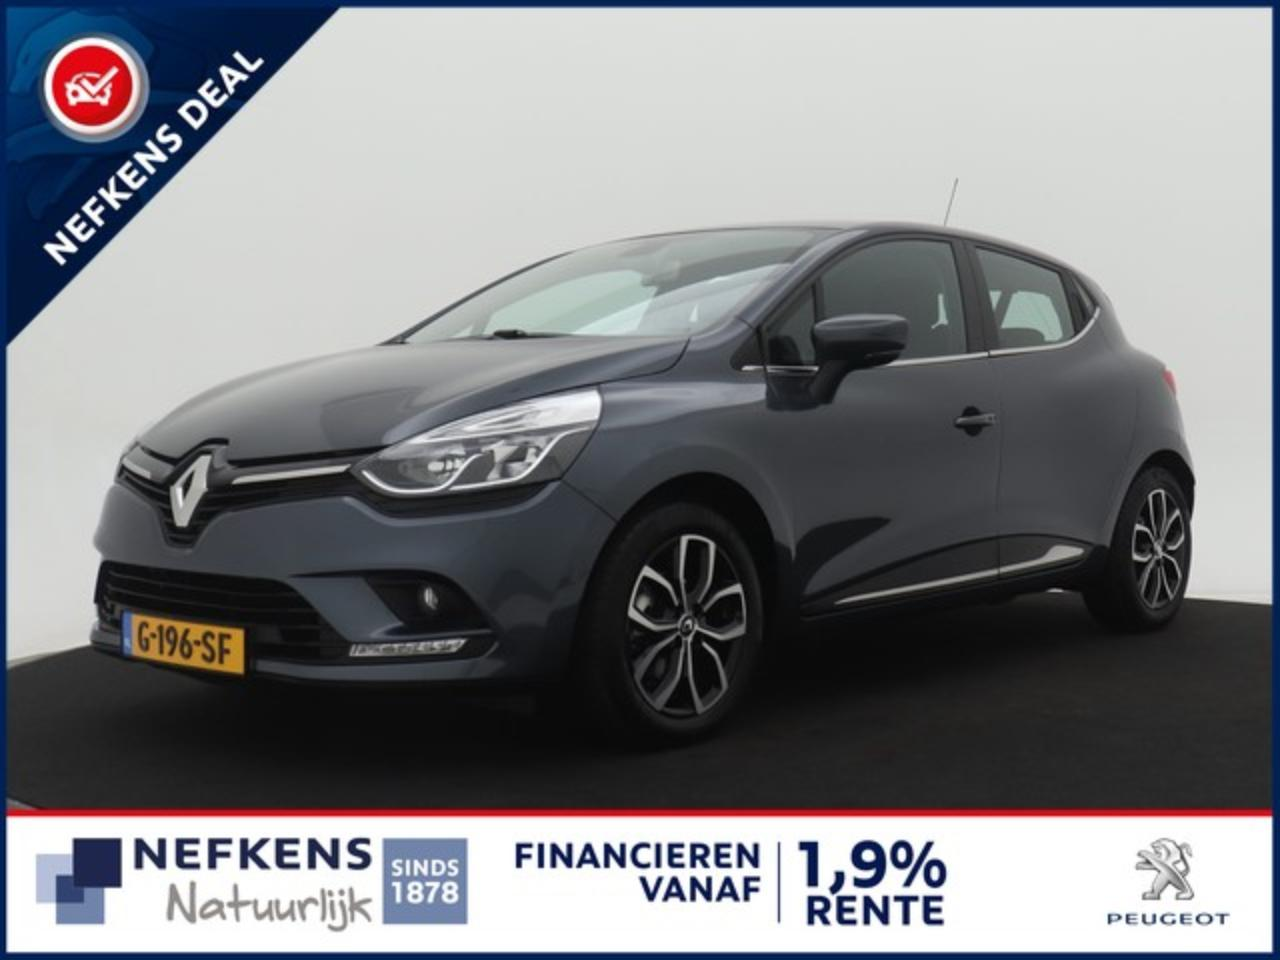 Renault Clio 0.9 TCe 90pk Intens | Navi | Keyless Entry | Clima